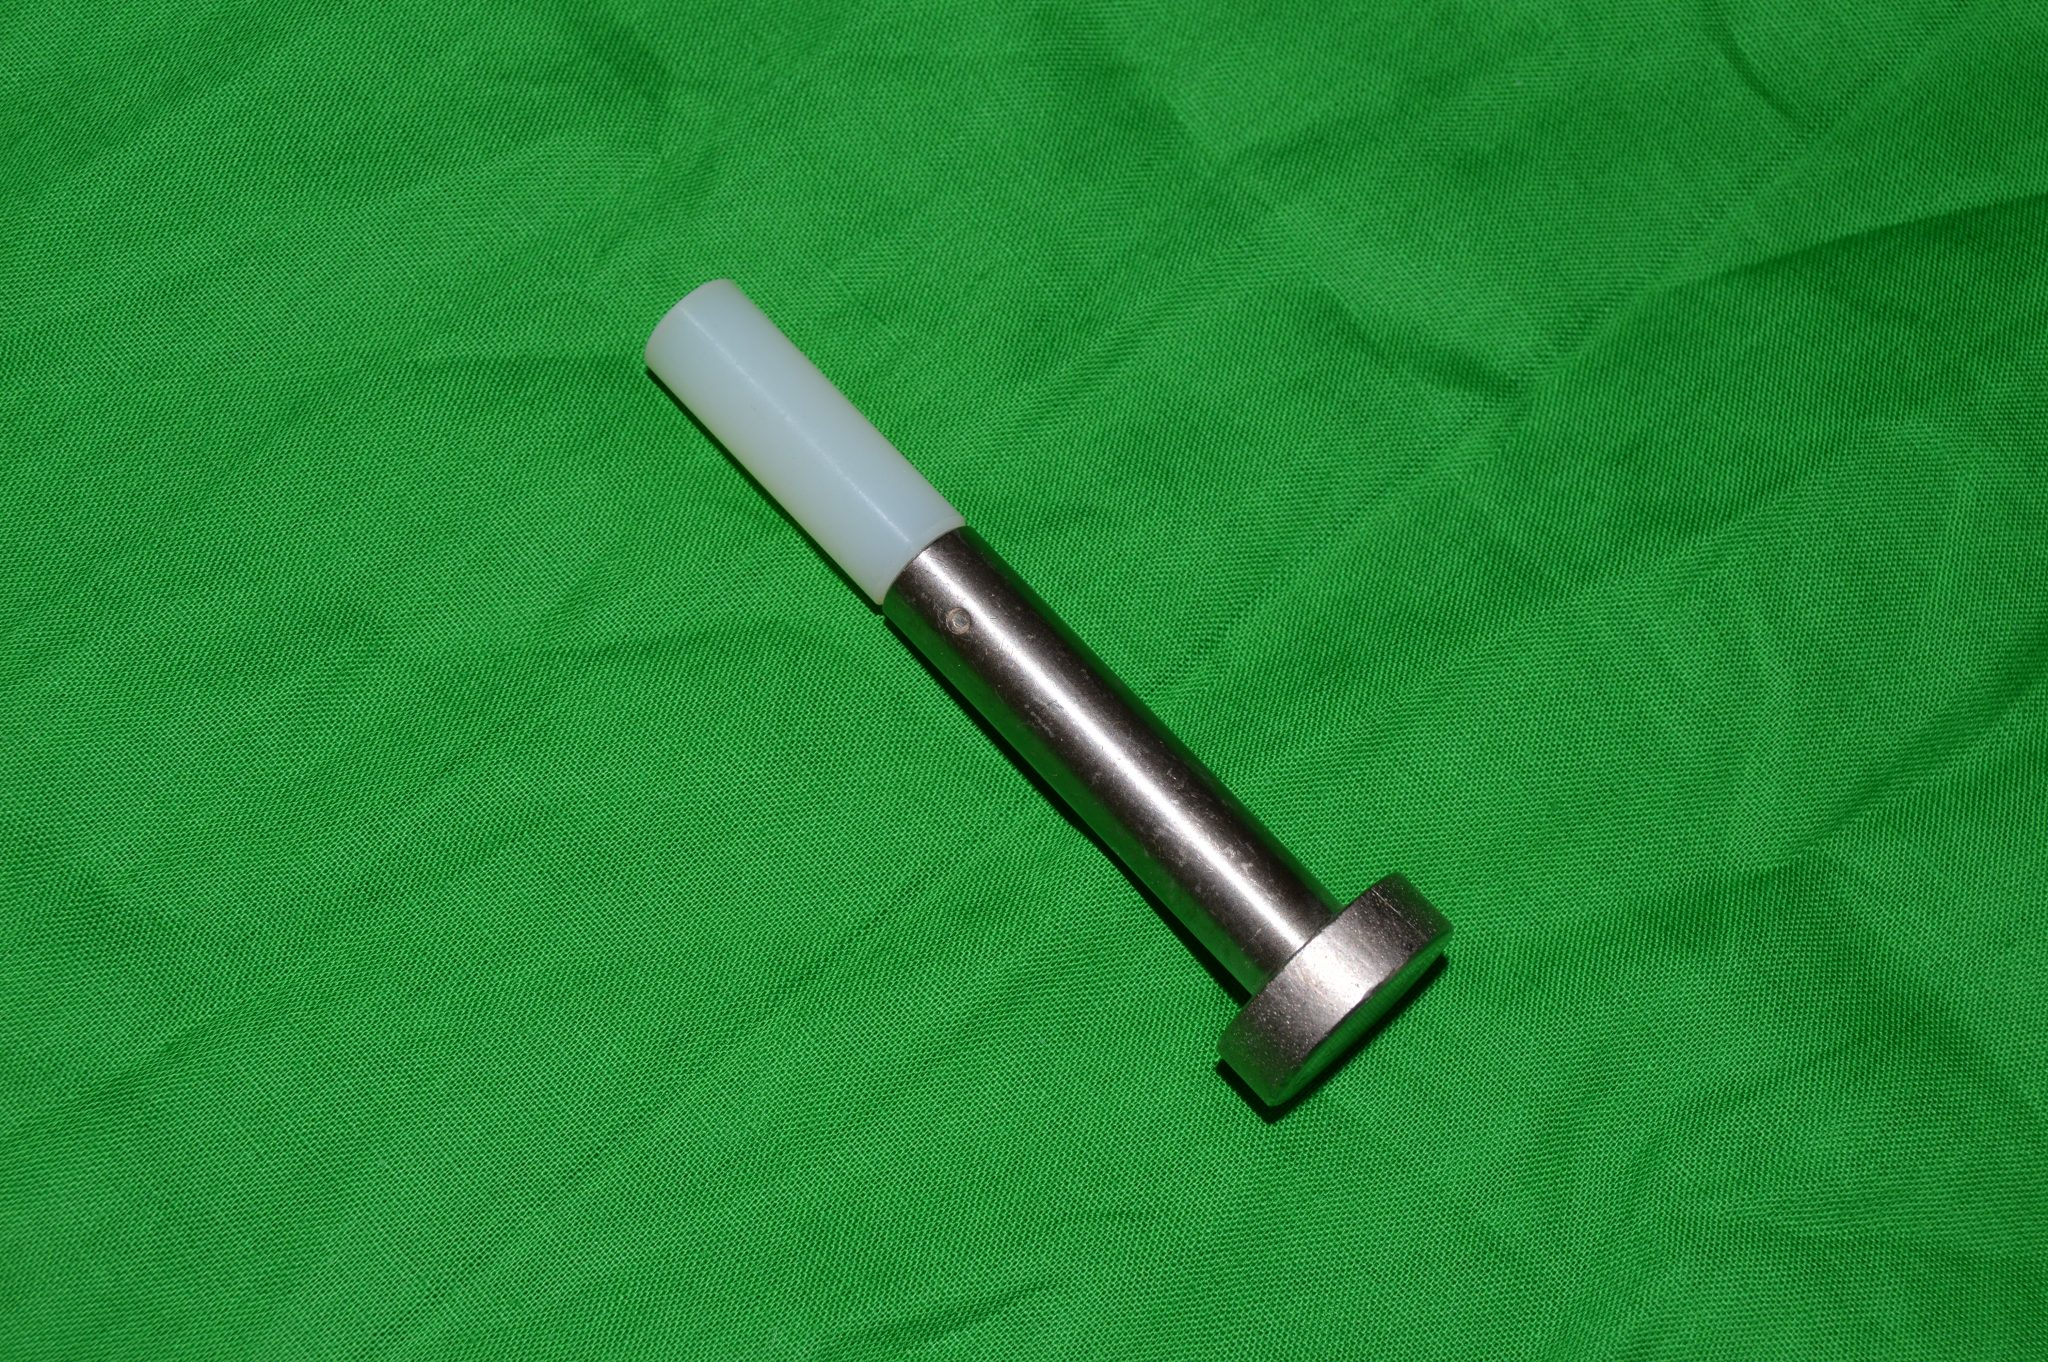 Plunger Assembly VUK 515-5941-01